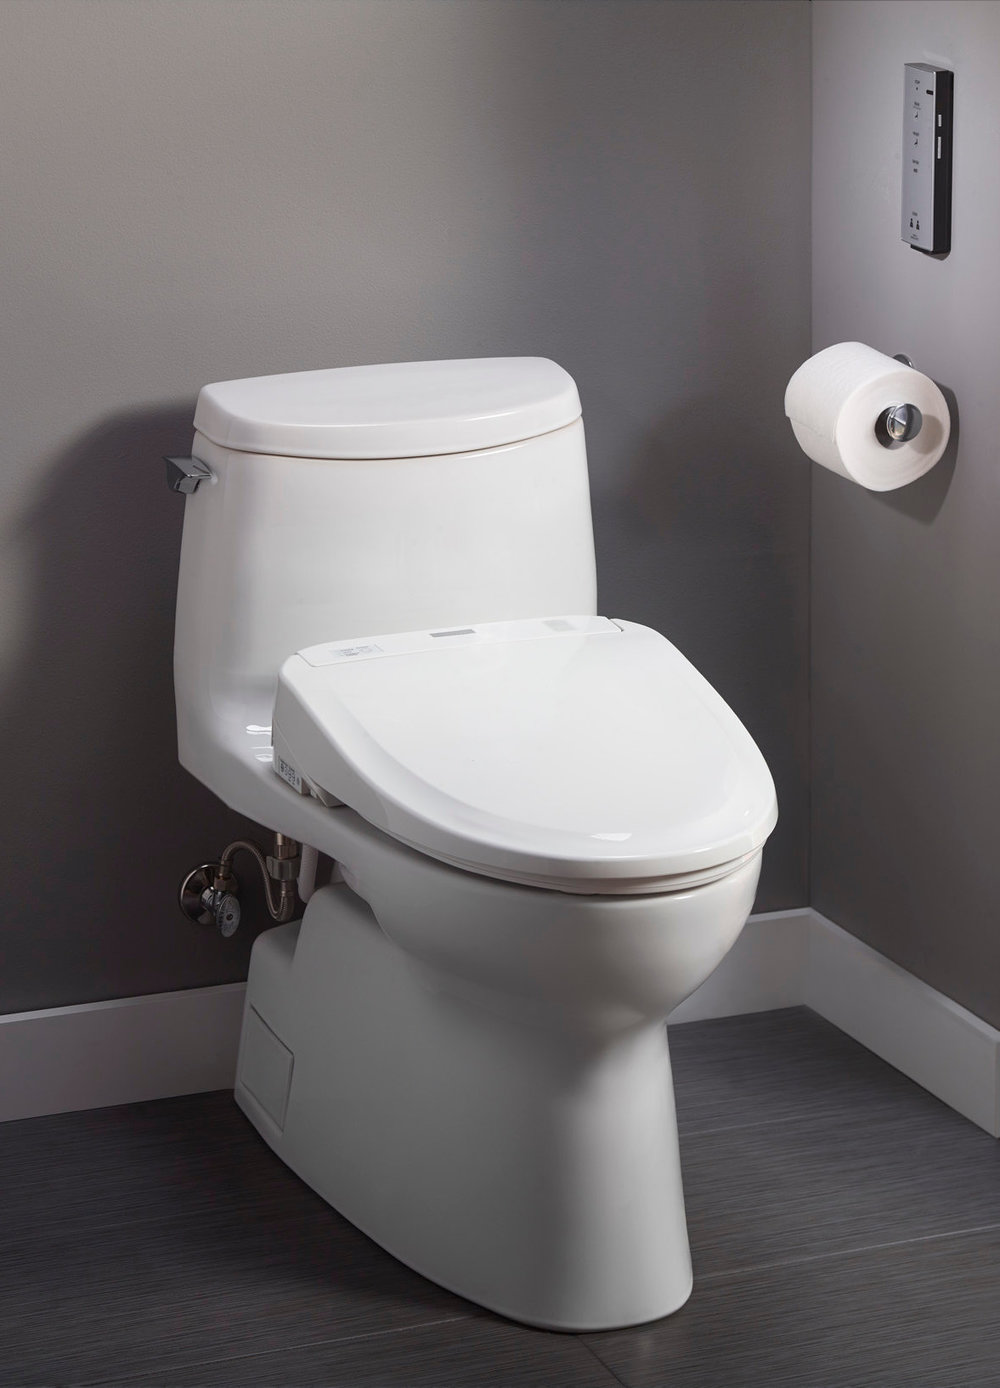 My Robot Toilet — OmarKnows